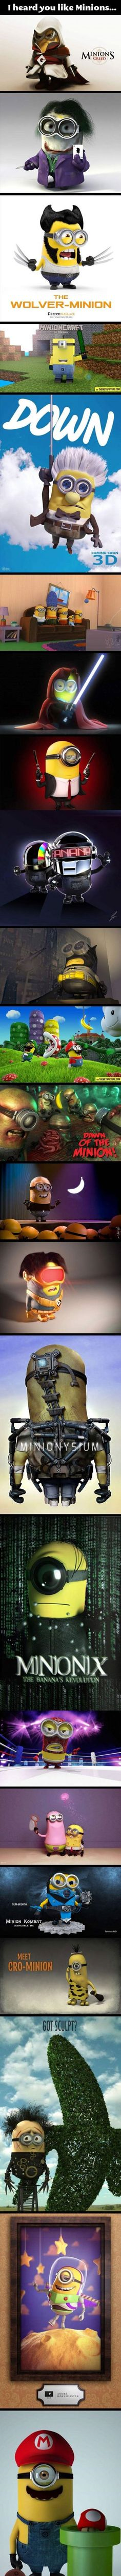 SO...MUCH...YES - Fun Picture | Webfail - Fail Pictures and Fail Videos.  Love me some Minion's!